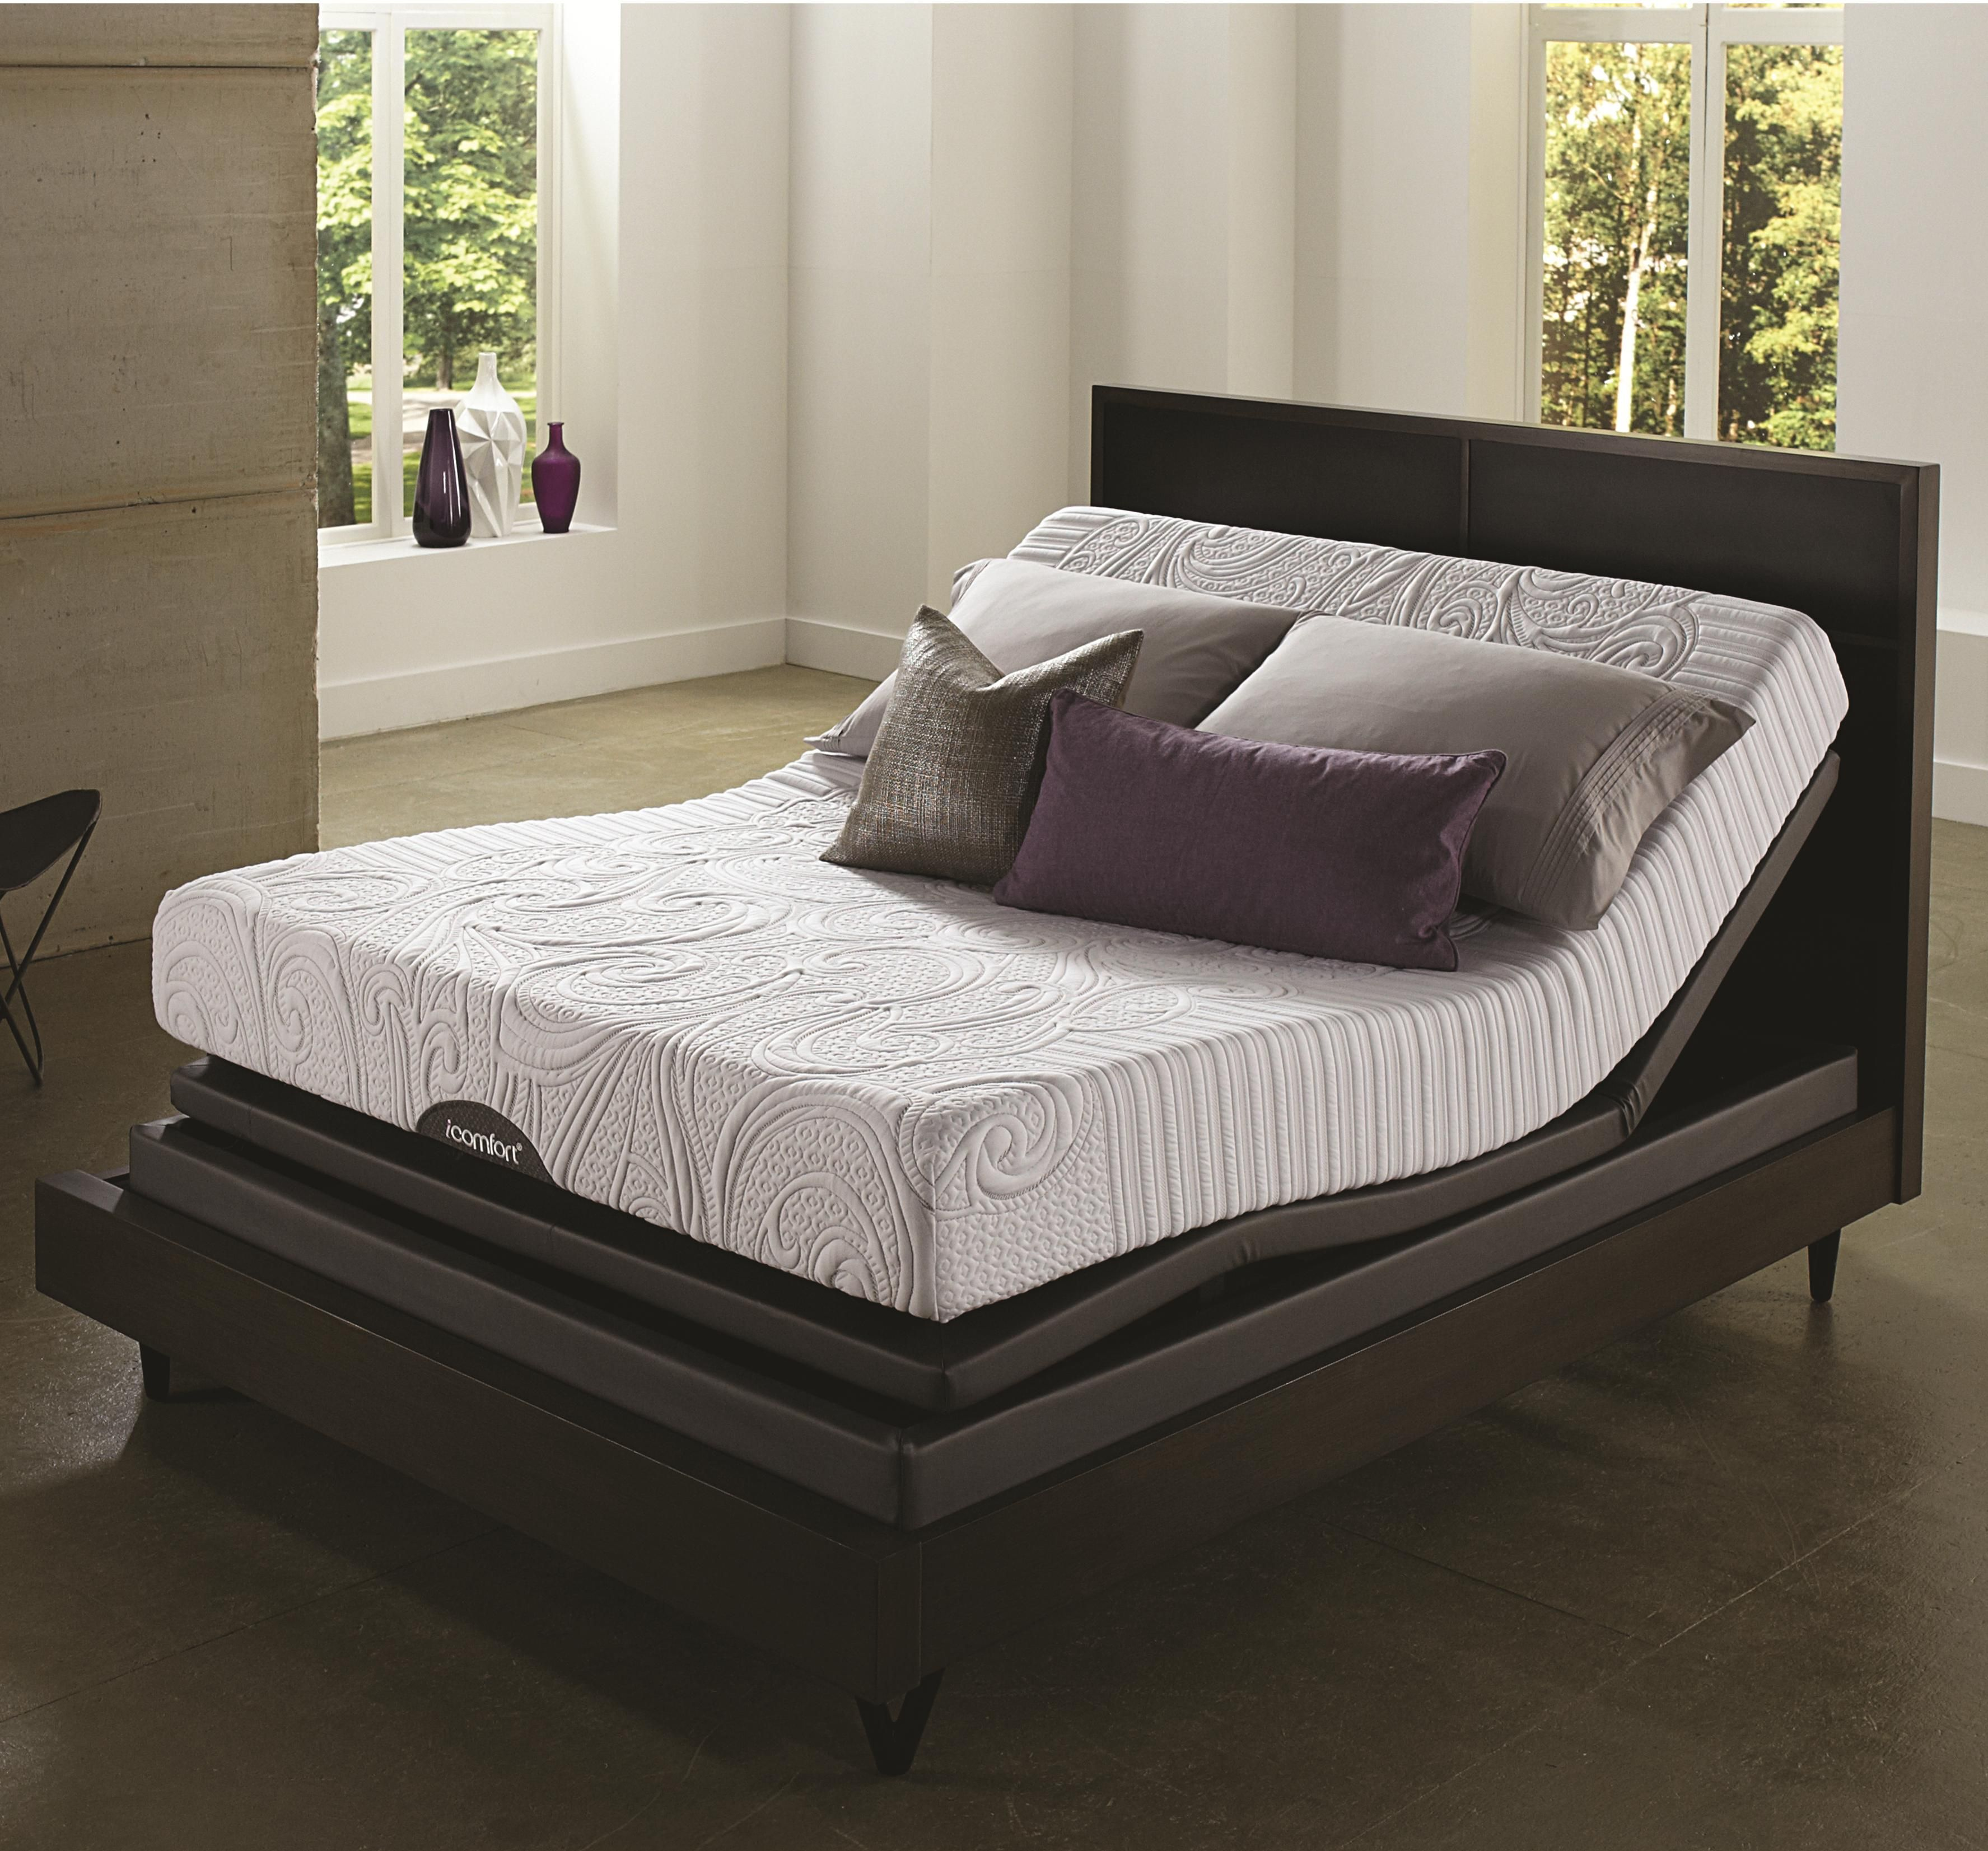 Memory Foam Mattress Too Firm Not Too Plush Not Too Firm This Mattress Sits Right In The